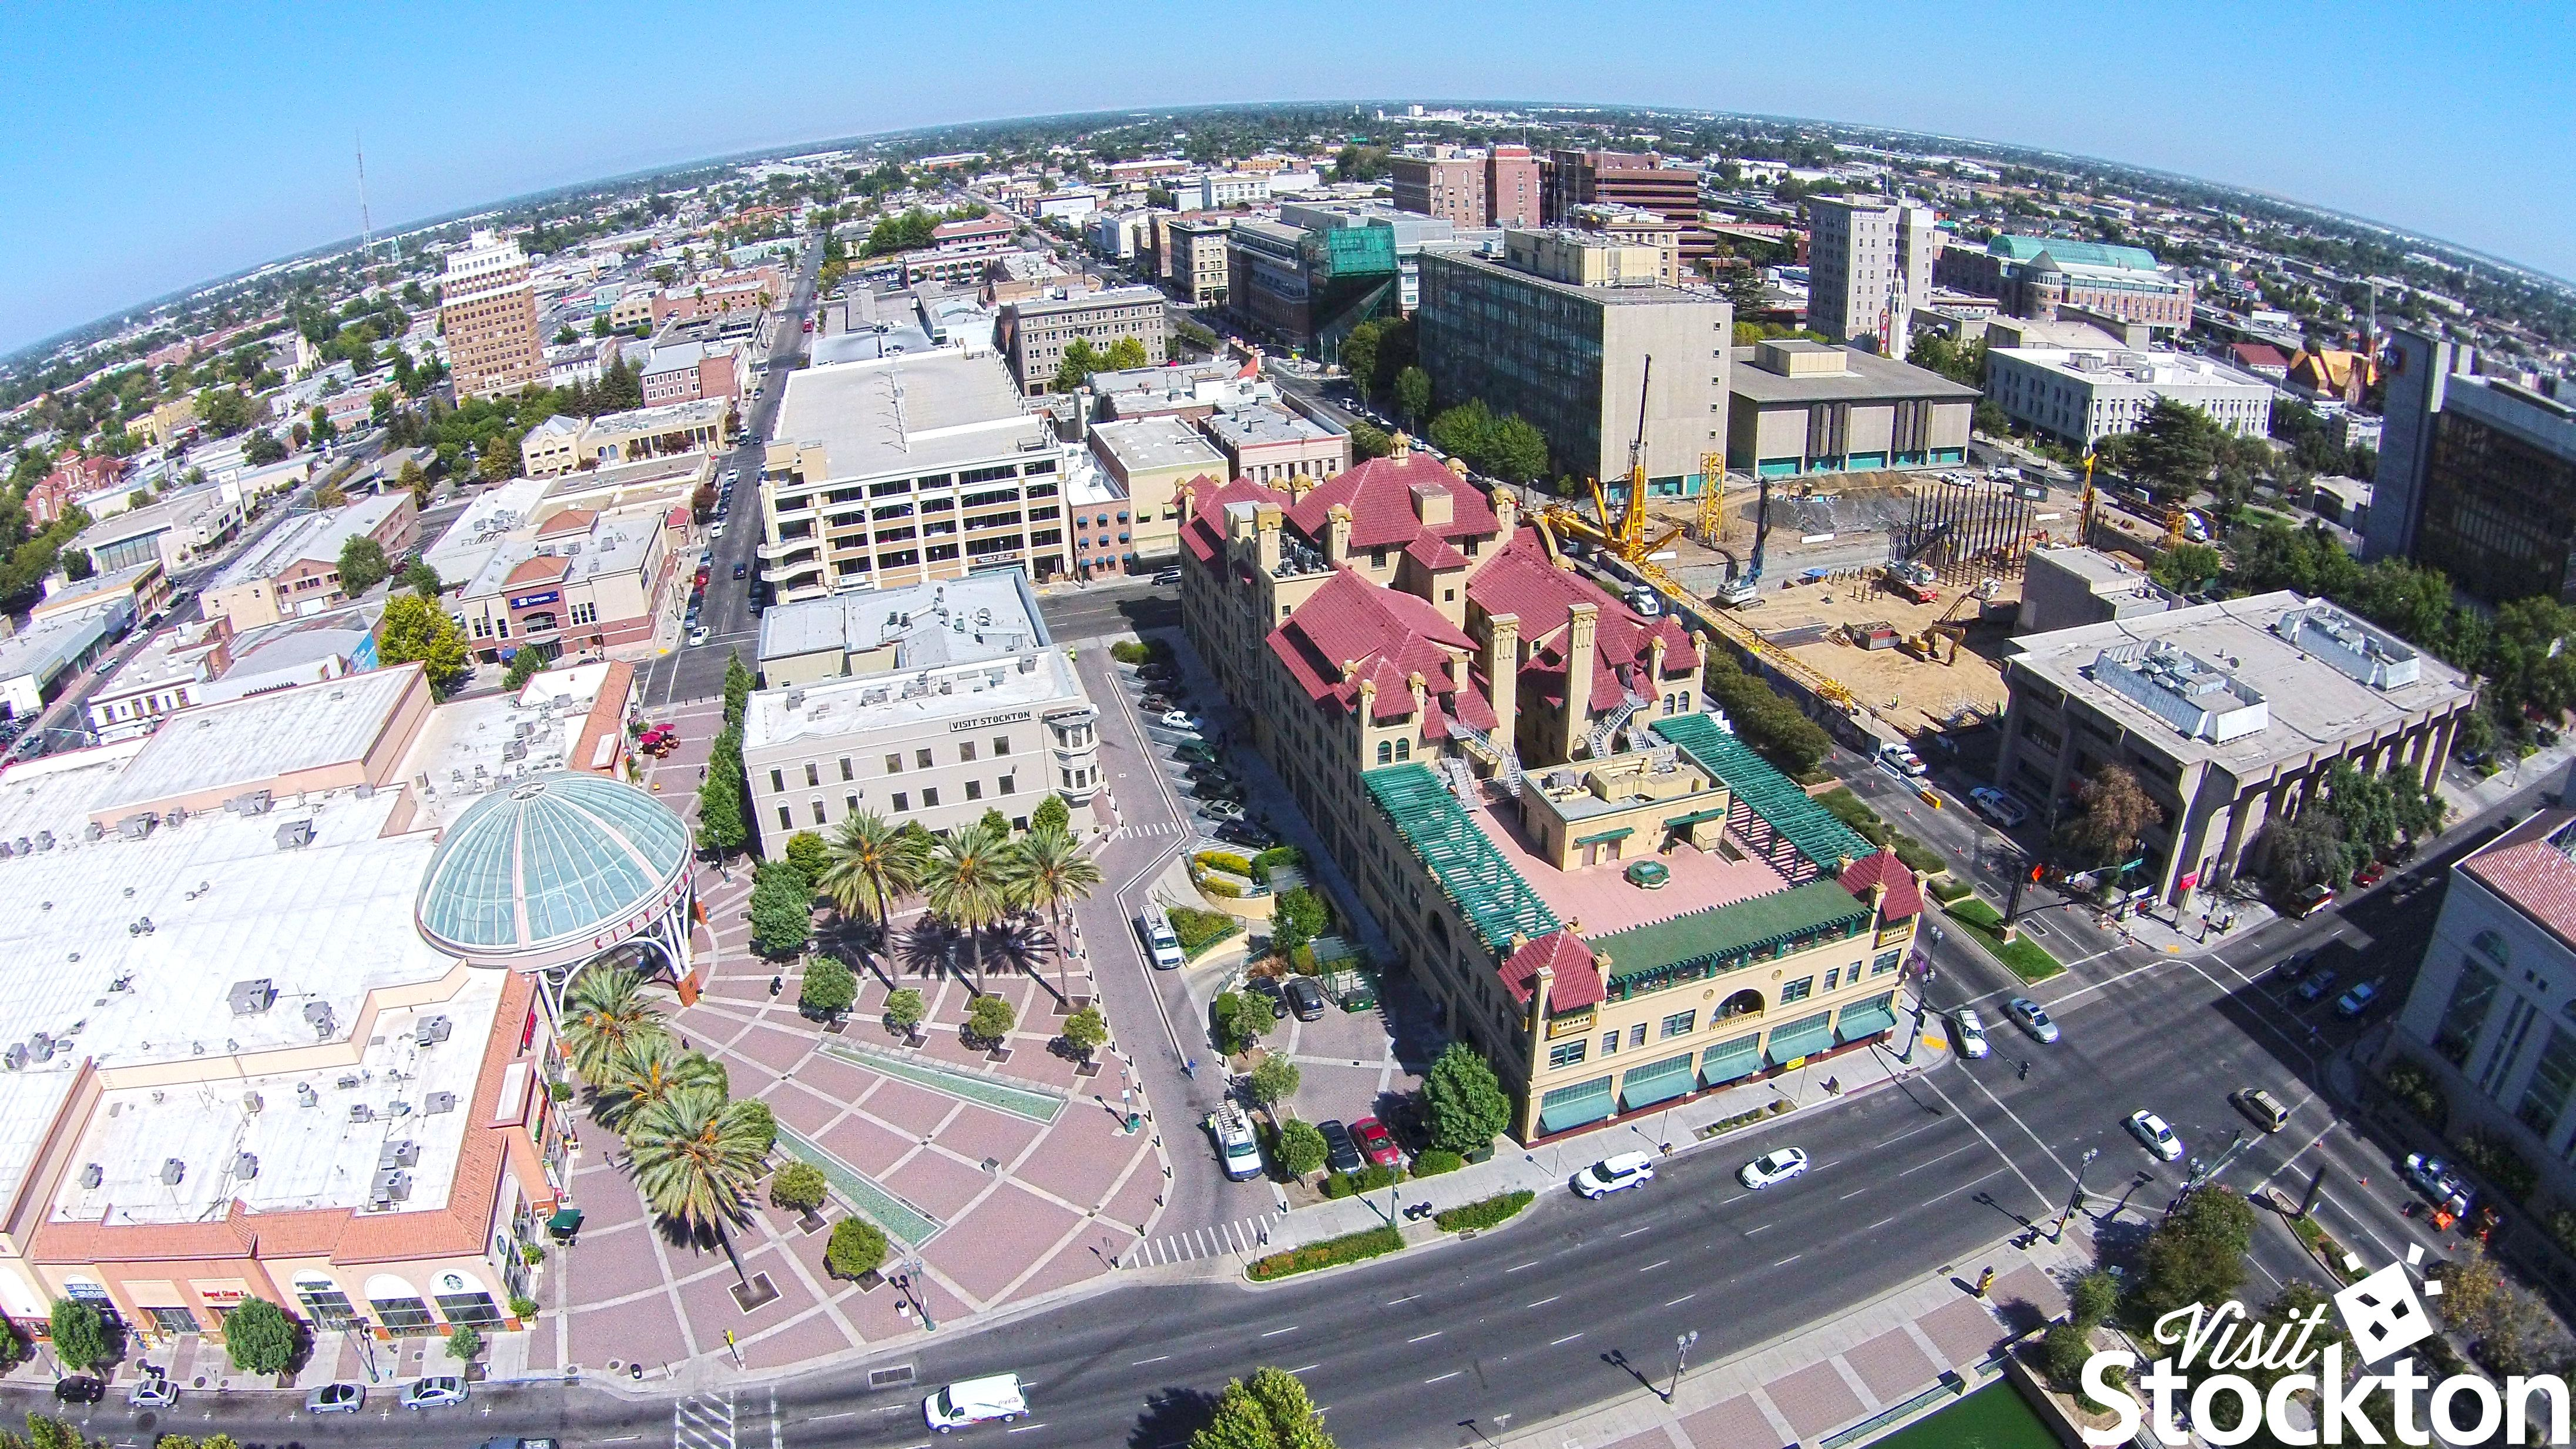 Downtown Stockton, CA looking east. | Usa